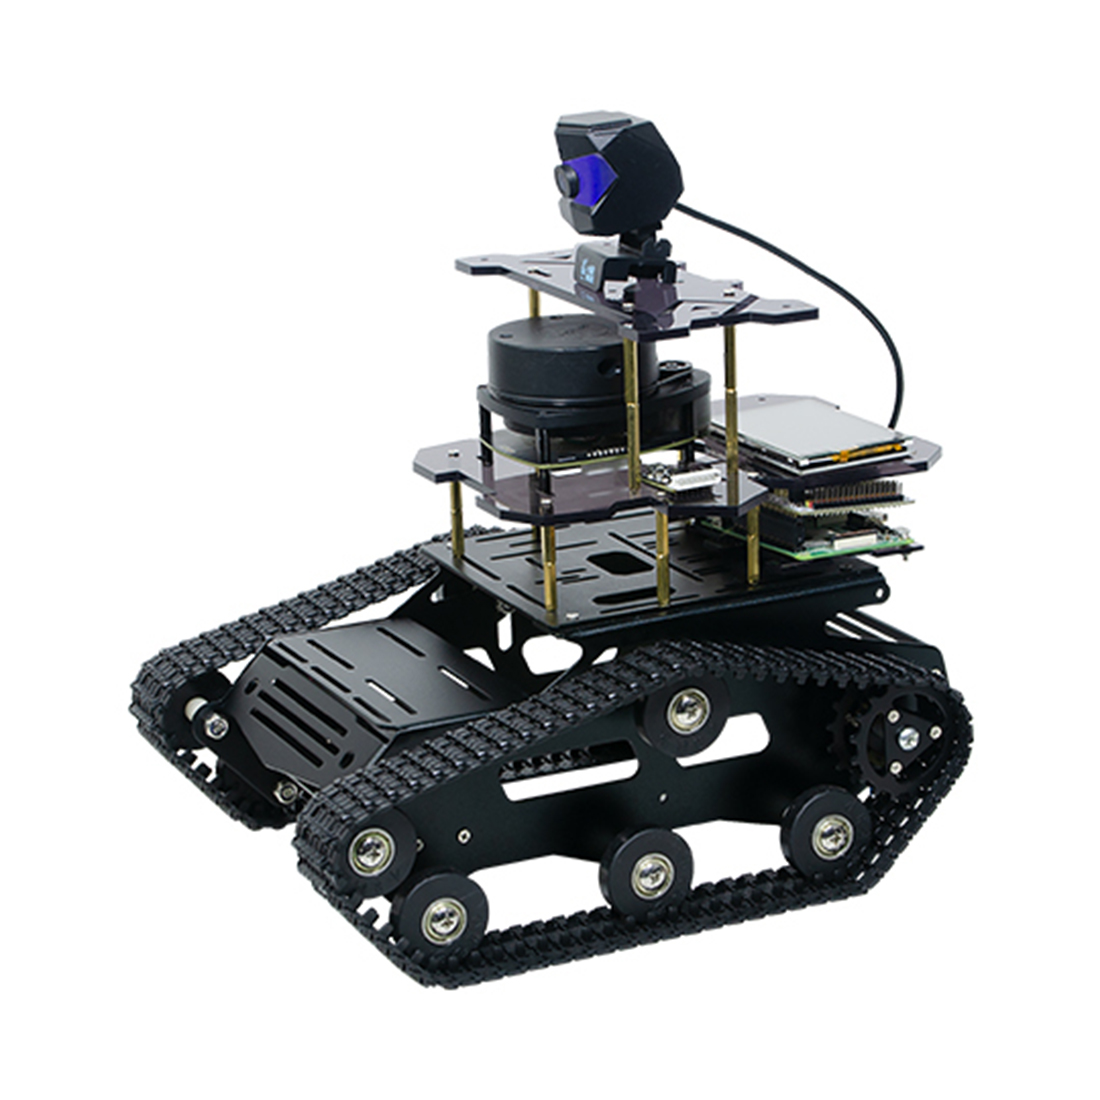 DIY Smart Robot Tank Chassis Car With Laser Radar For Raspberry Pi 4 (2G) - Black